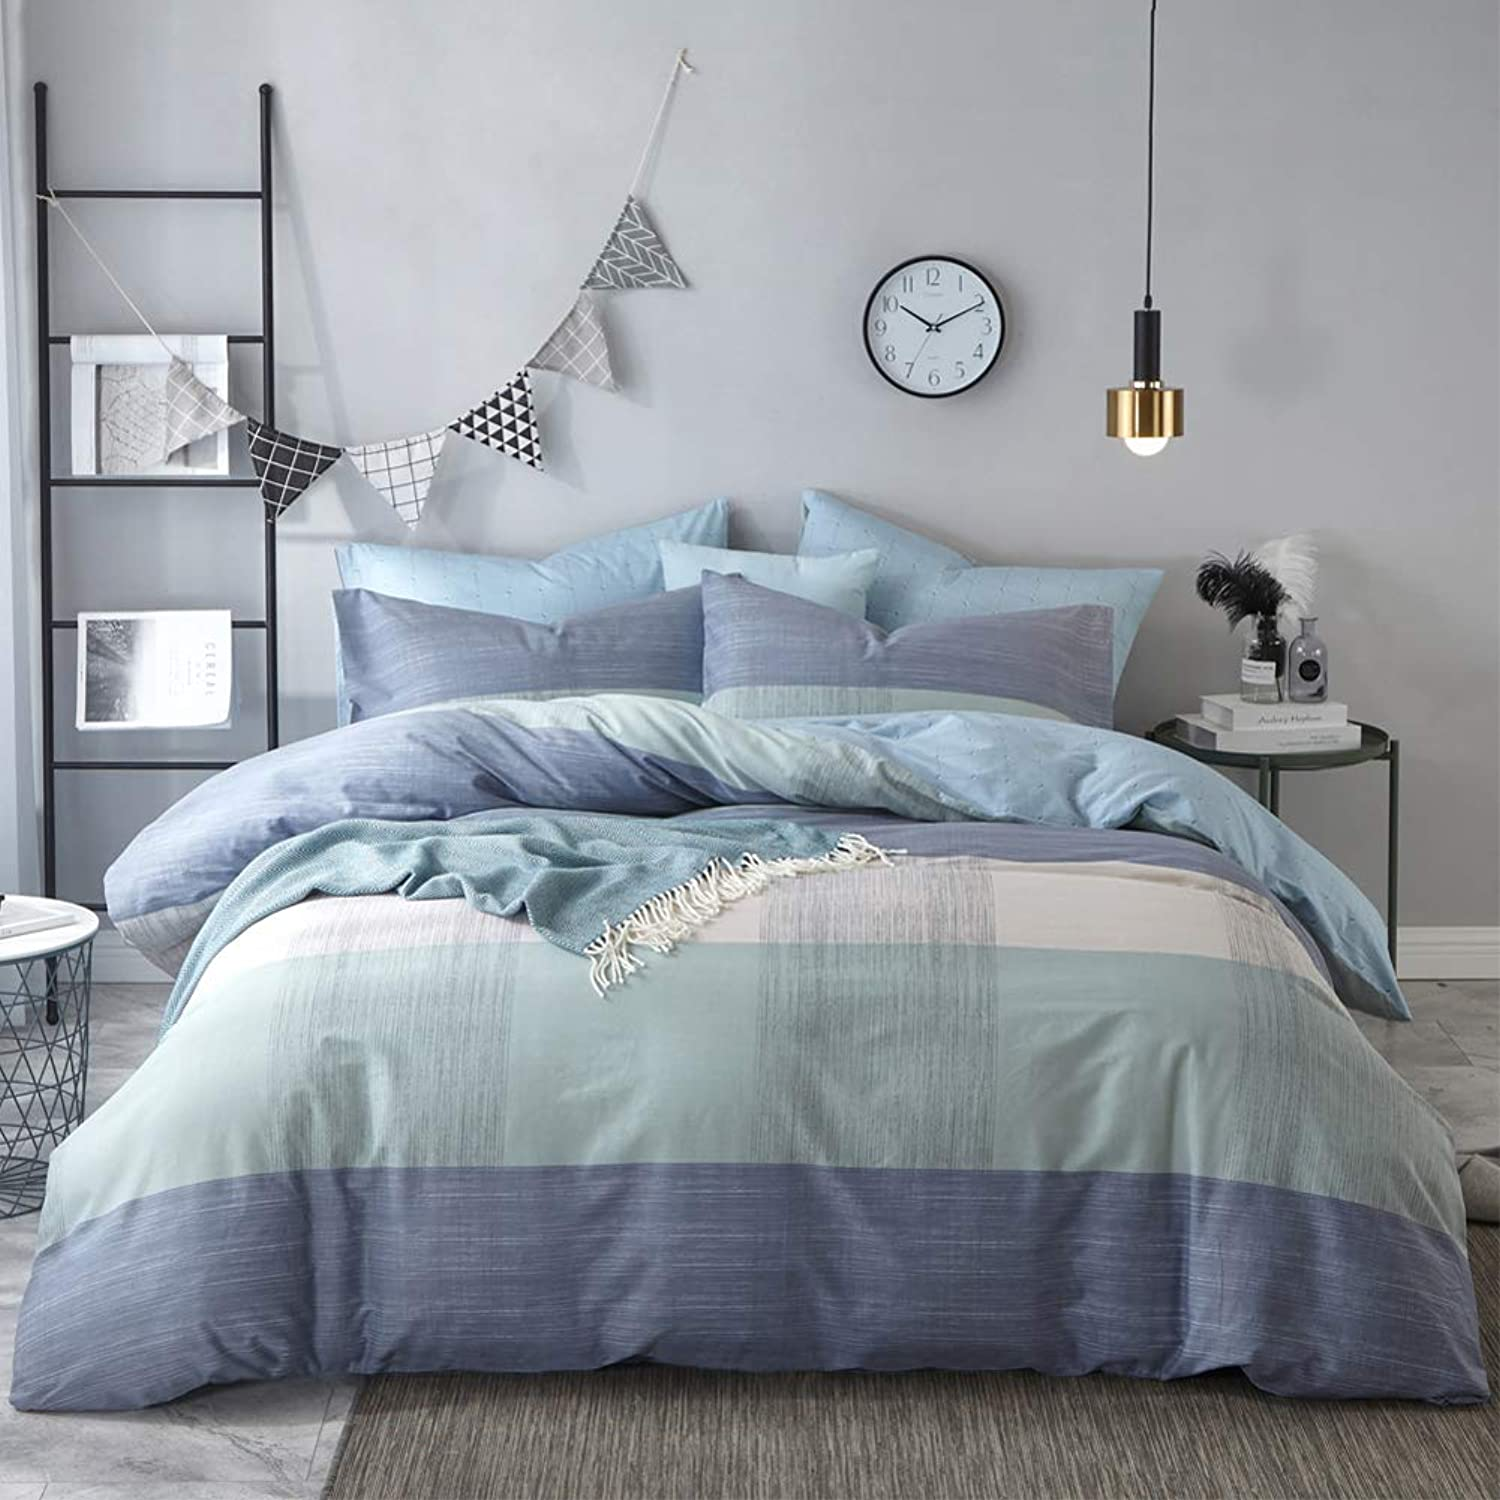 Mixinni Geometric Duvet Cover Queen Soft Cotton bluee Patchwork Modern Bedding Set with Zipper Ties Mint Green Duvet Cover Set Perfect for Him and Her, Easy Care, Soft and Durable-Queen Full Size